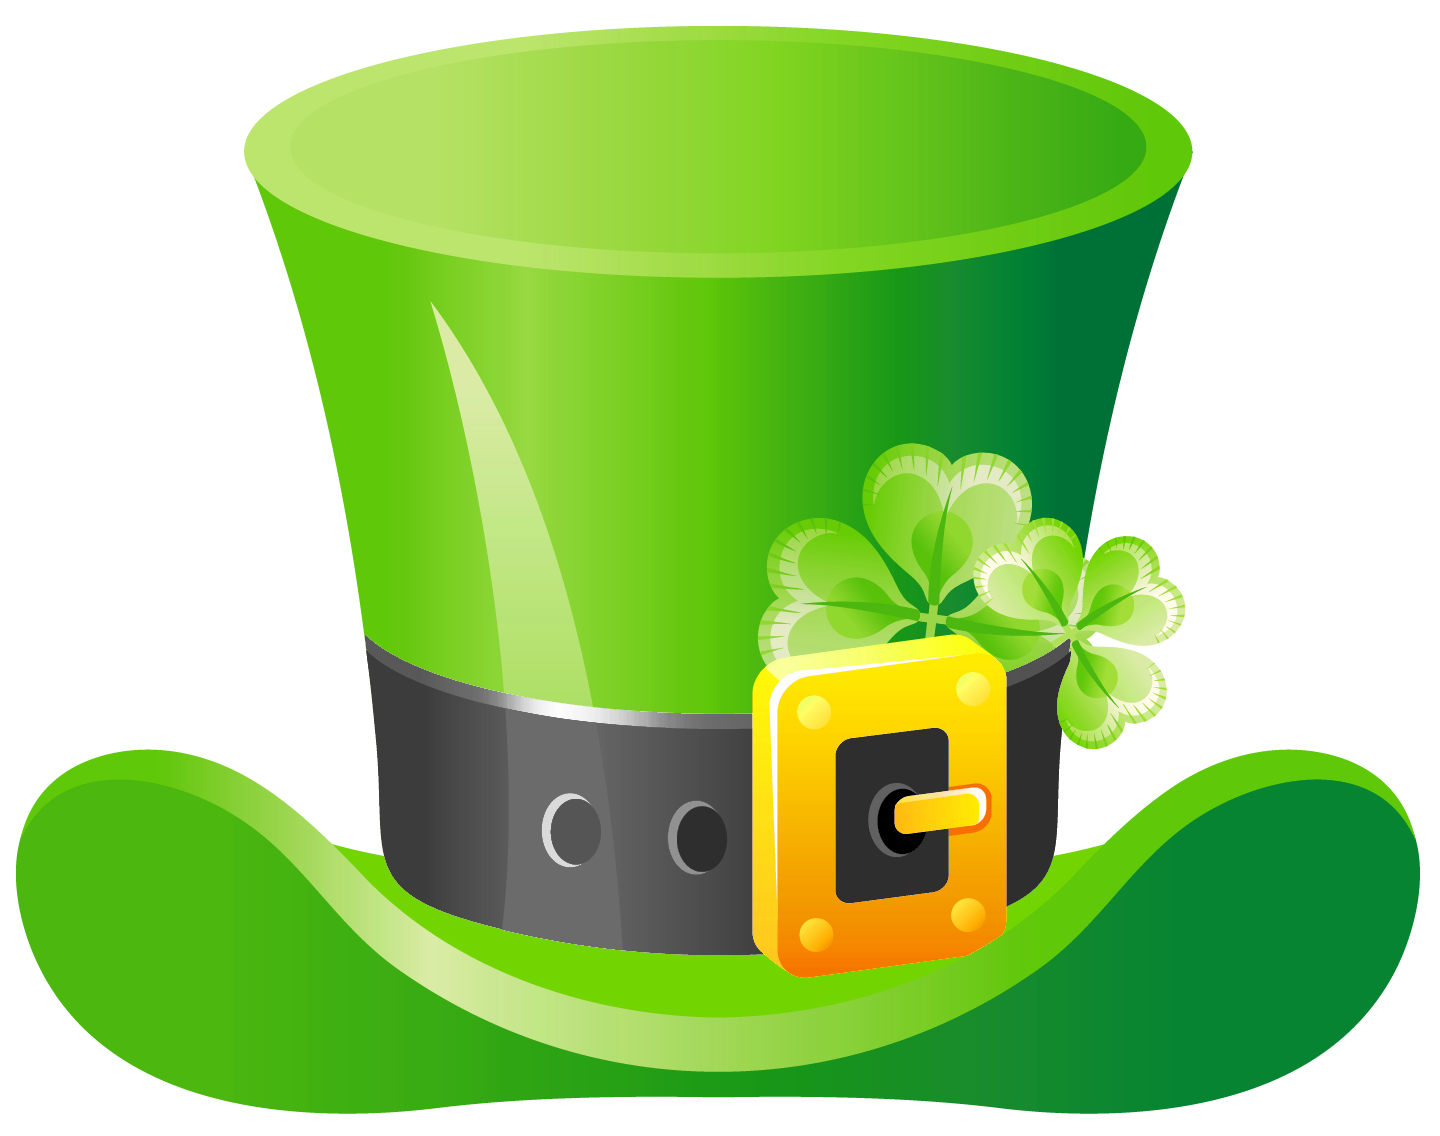 Patrick png picture artistic. Hat clipart st patrick's day